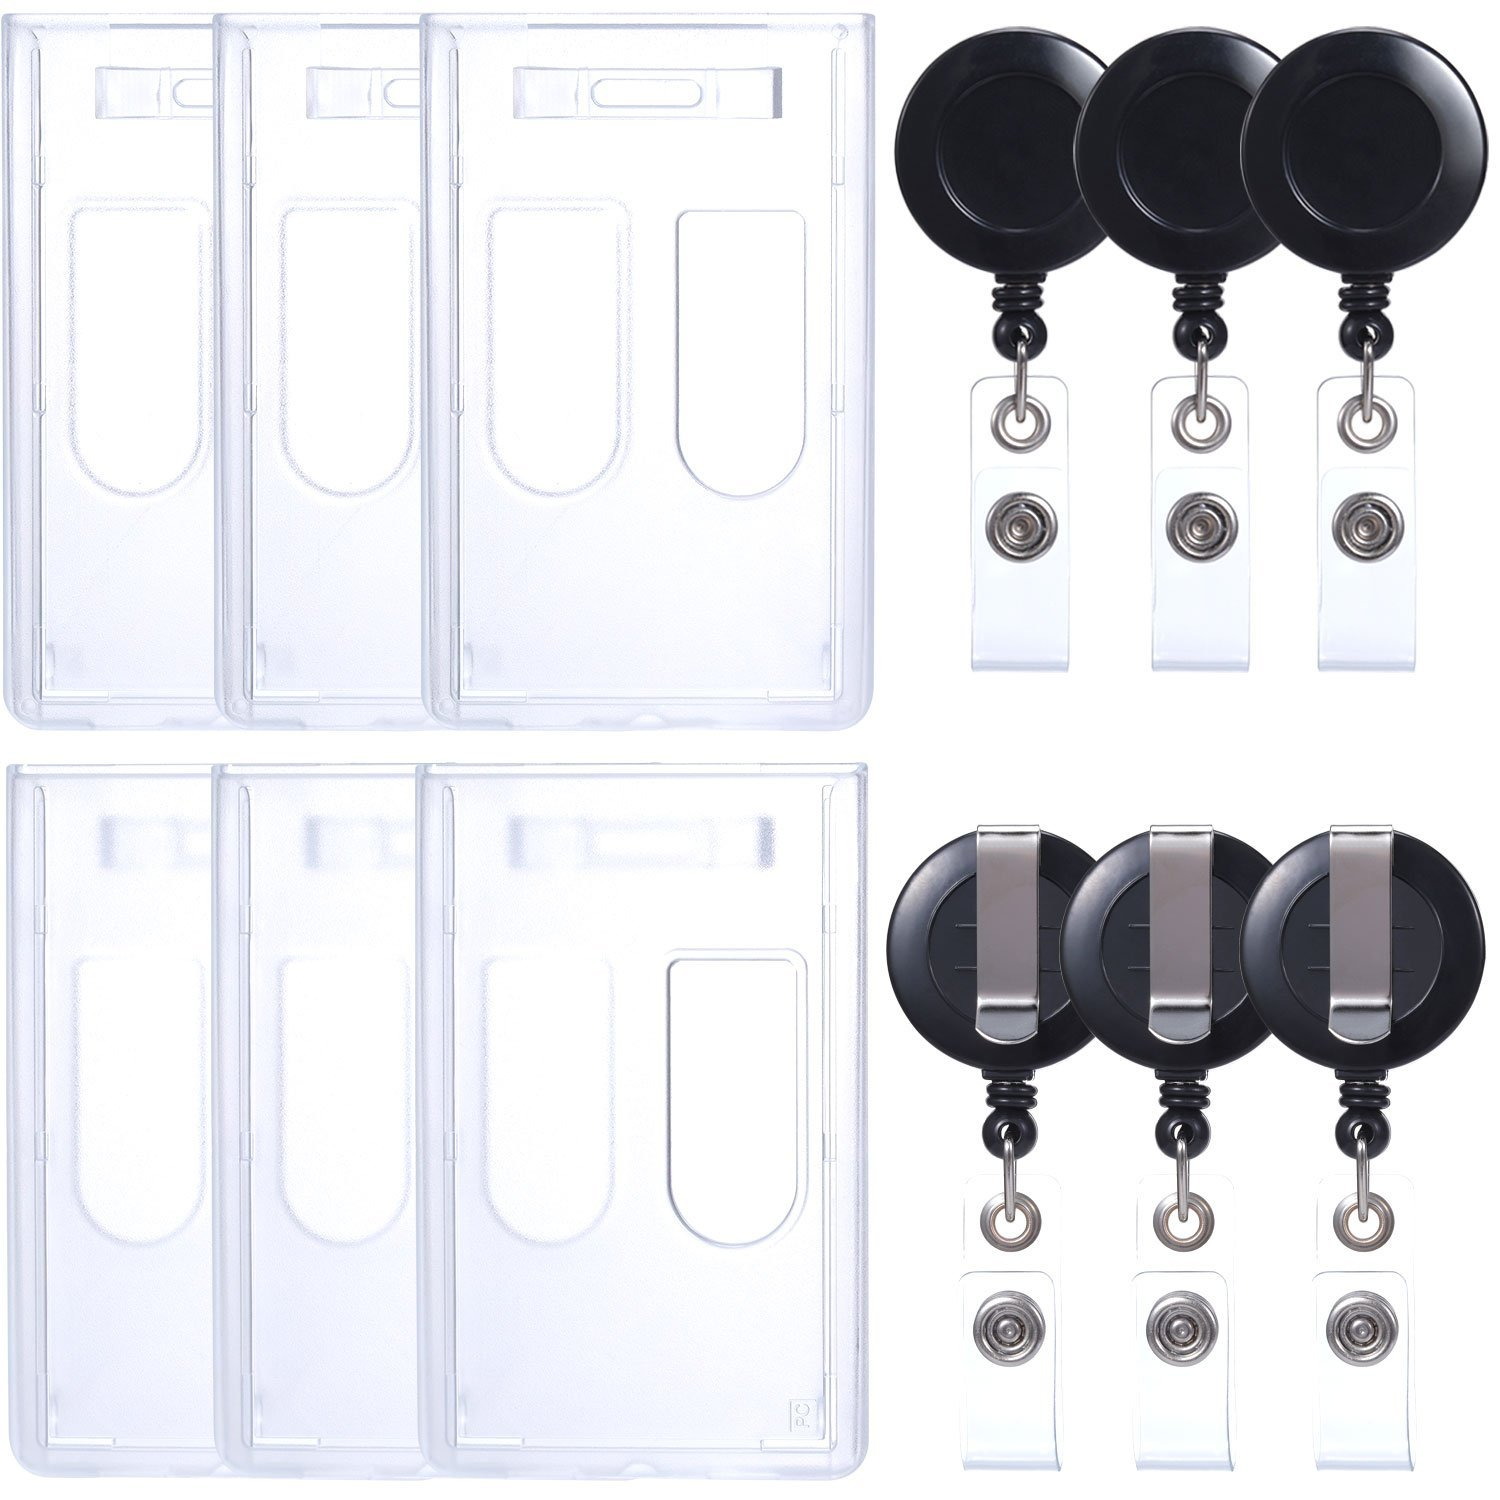 SATINIOR Retractable ID Badge Holder, Heavy Duty ID Badge Holder 2-Card Slot with Retractable Badge Reel for Office Company Employee School Student ID Card (6 Set)